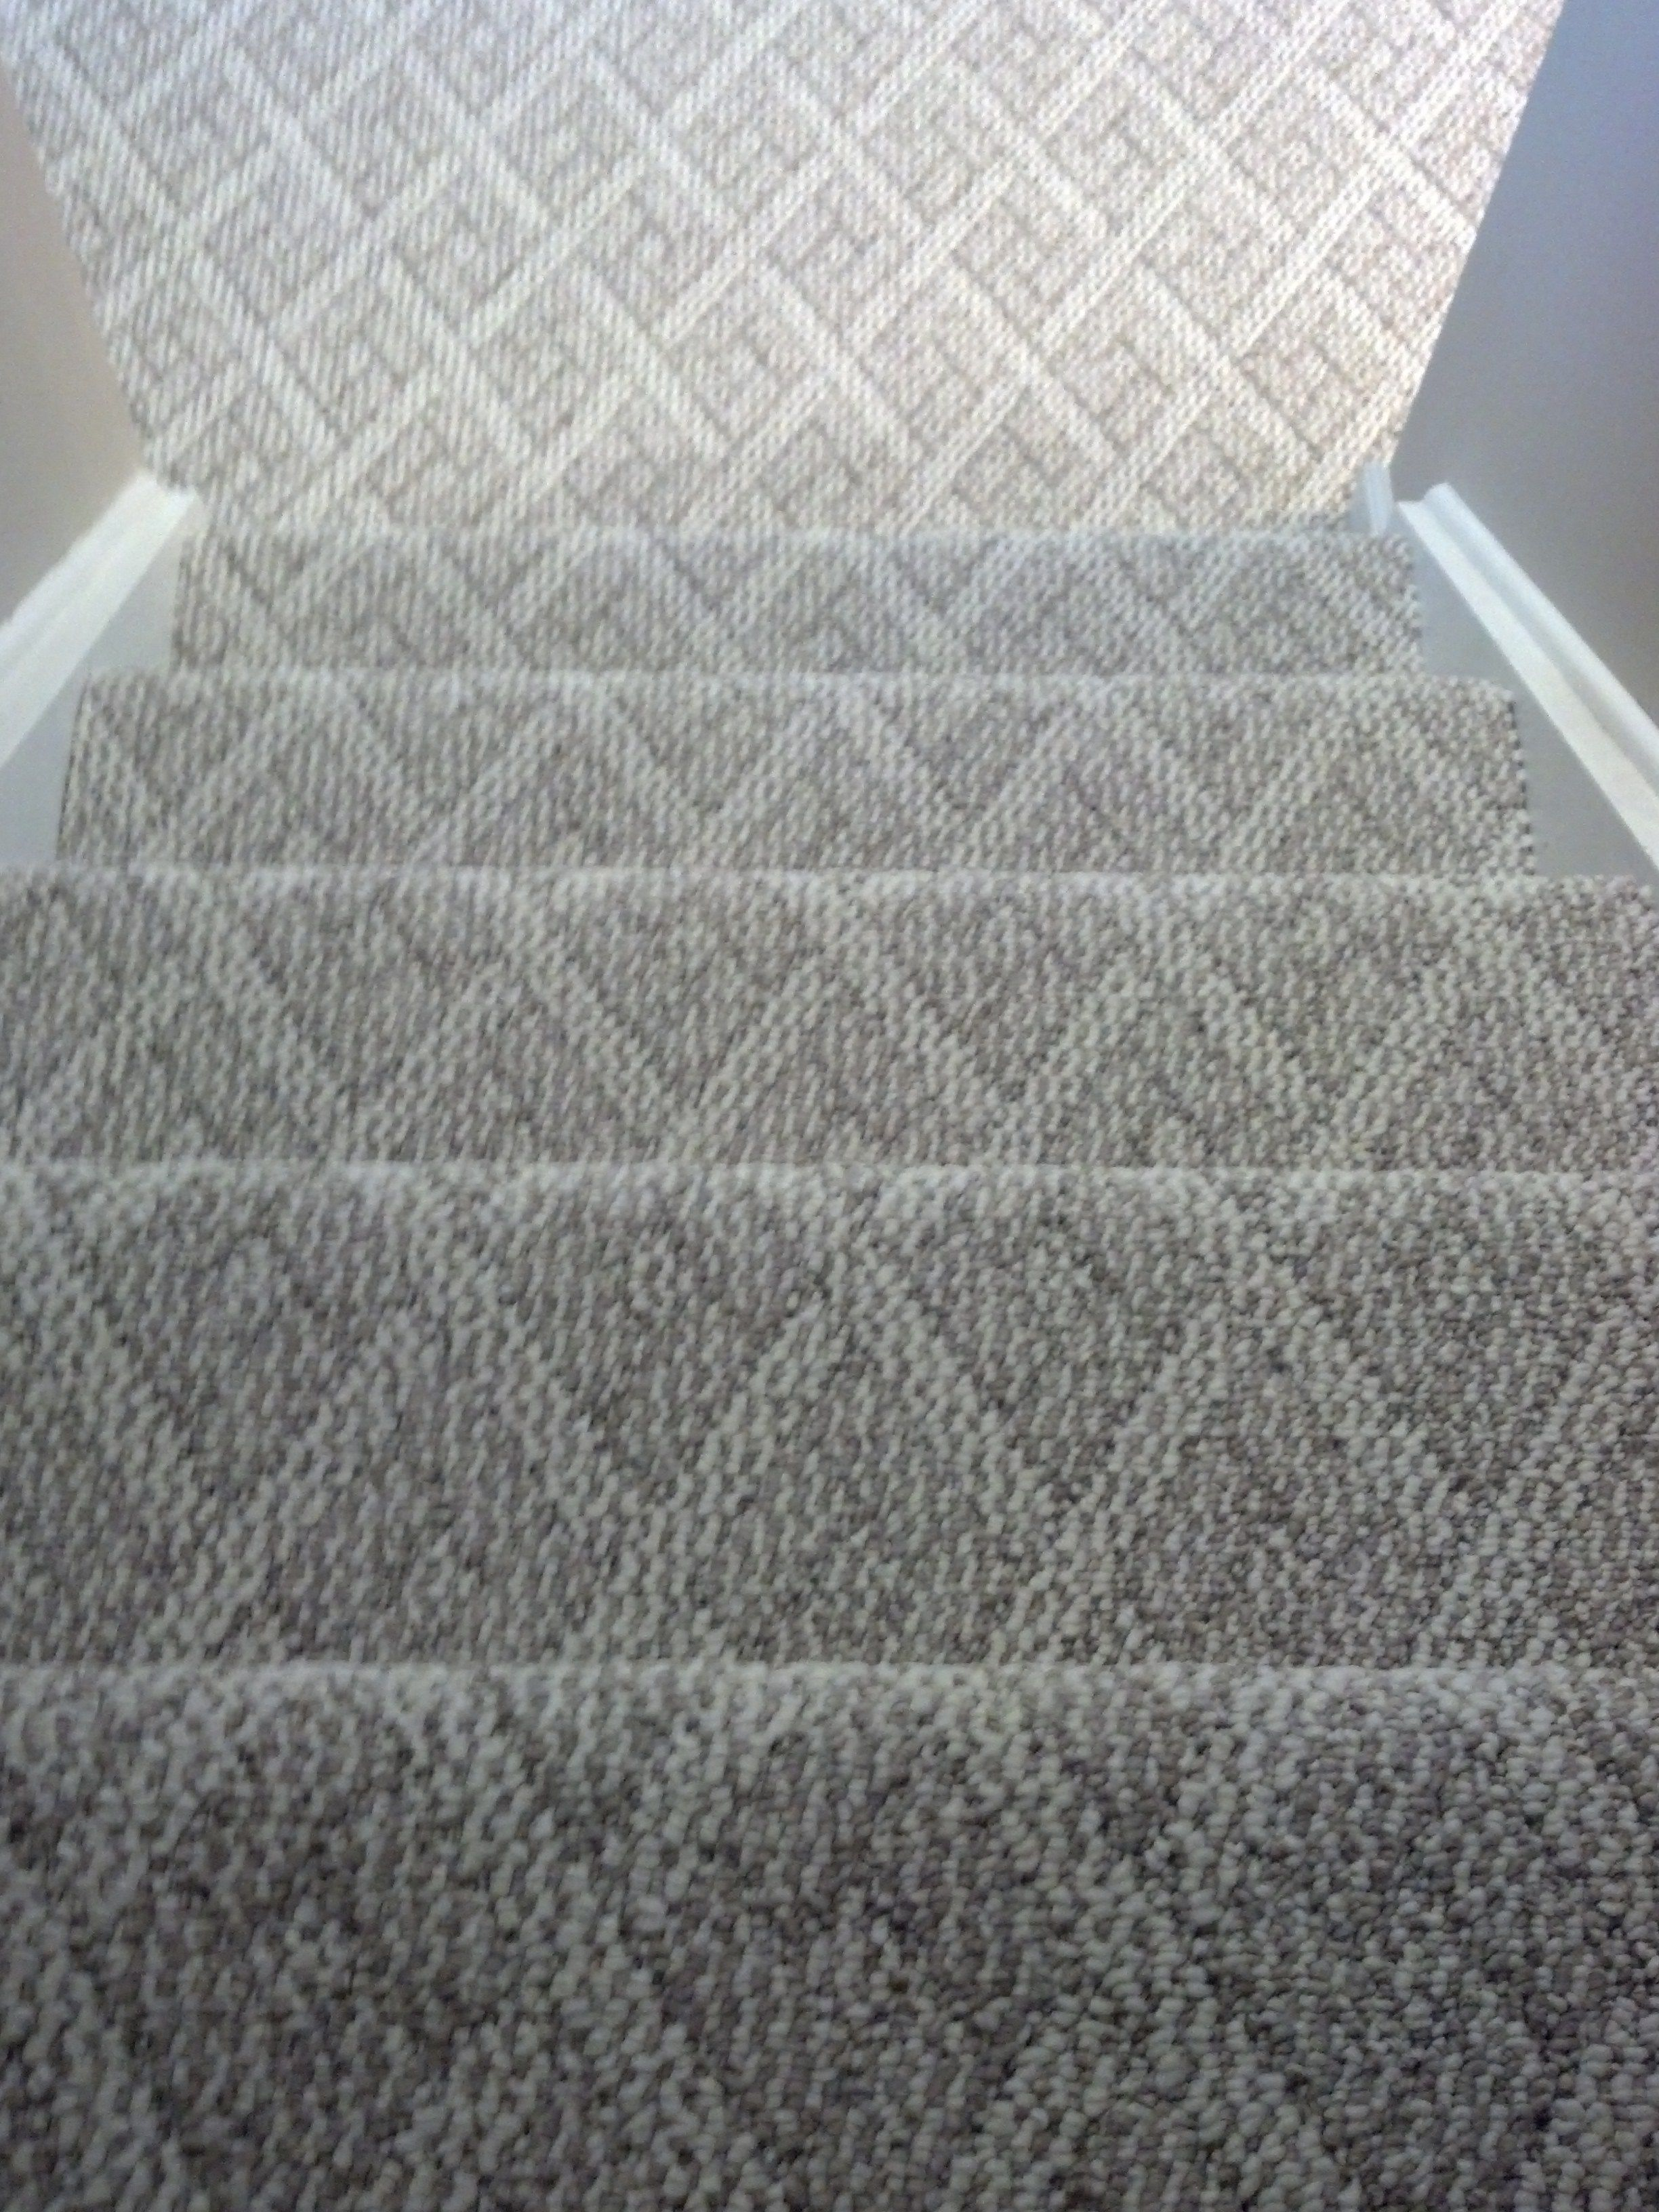 Berber carpet Cincinnati  Ohio installed on steps and basement     Berber carpet Cincinnati  Ohio installed on steps and basement family room   Note     notice the pattern lining up on each step and floor